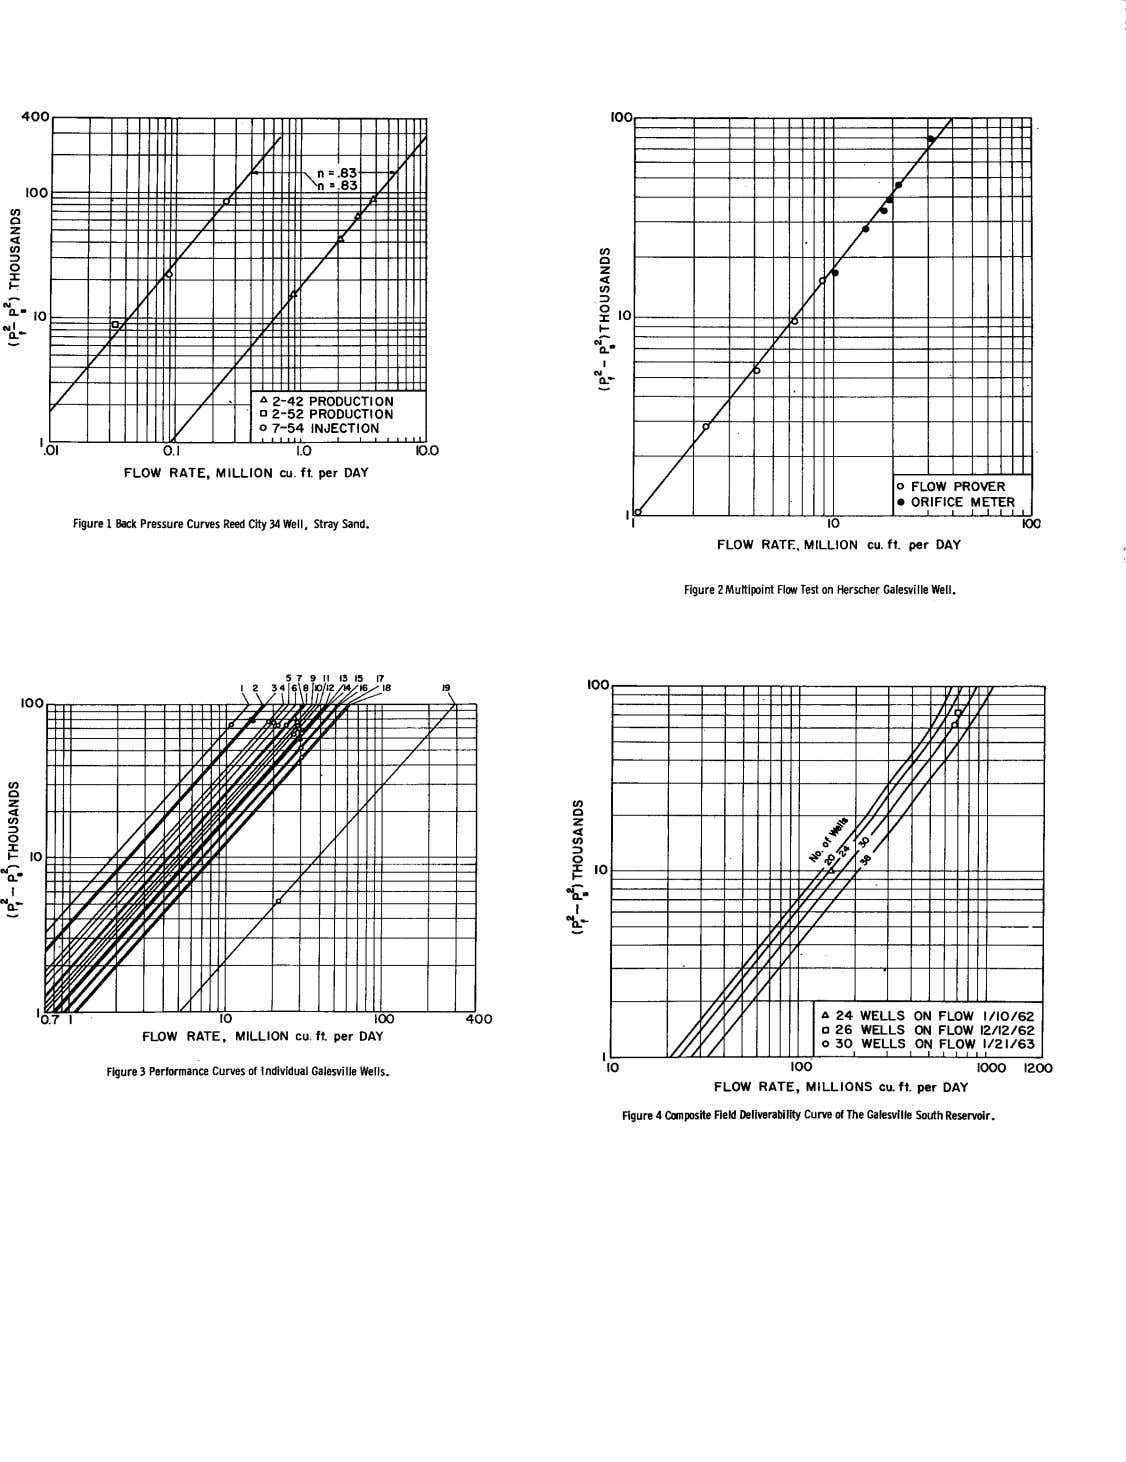 Figure 1 Back Pressure Curves Reed City 34 Well, Stray Sand. FLOW RATE. MILLION cu.